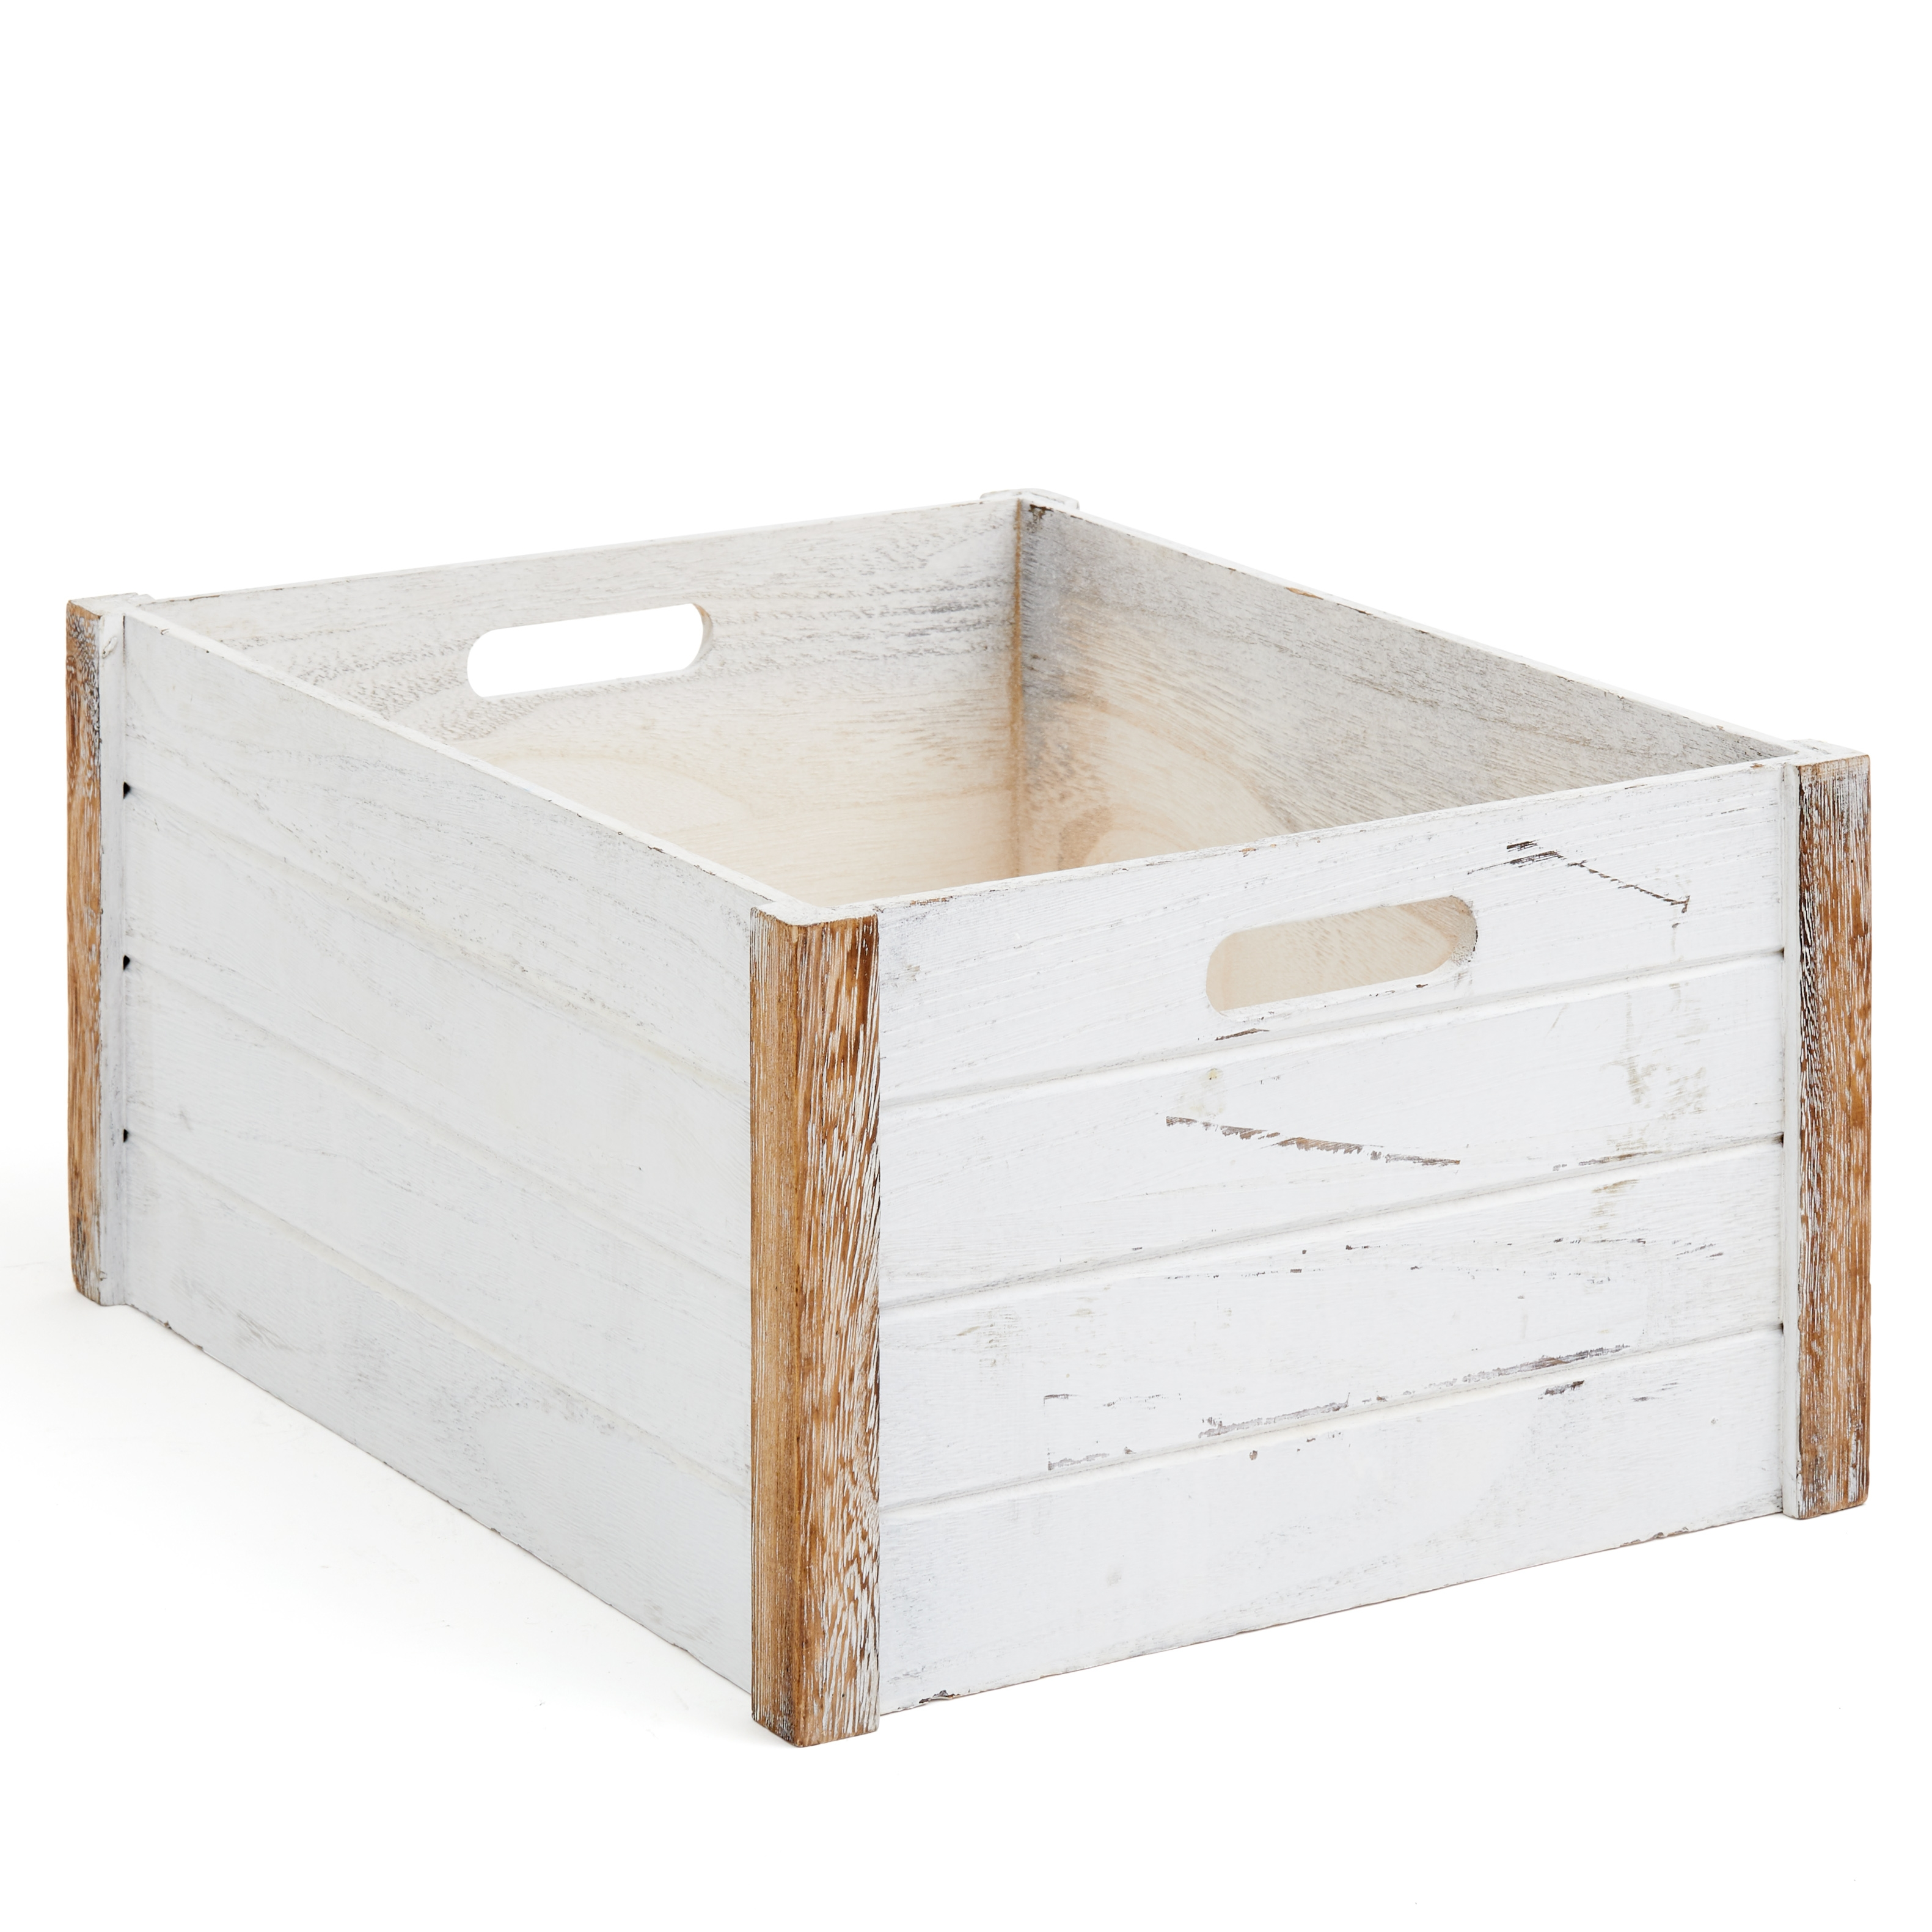 Crate Wooden Storage X Large From Storage Box